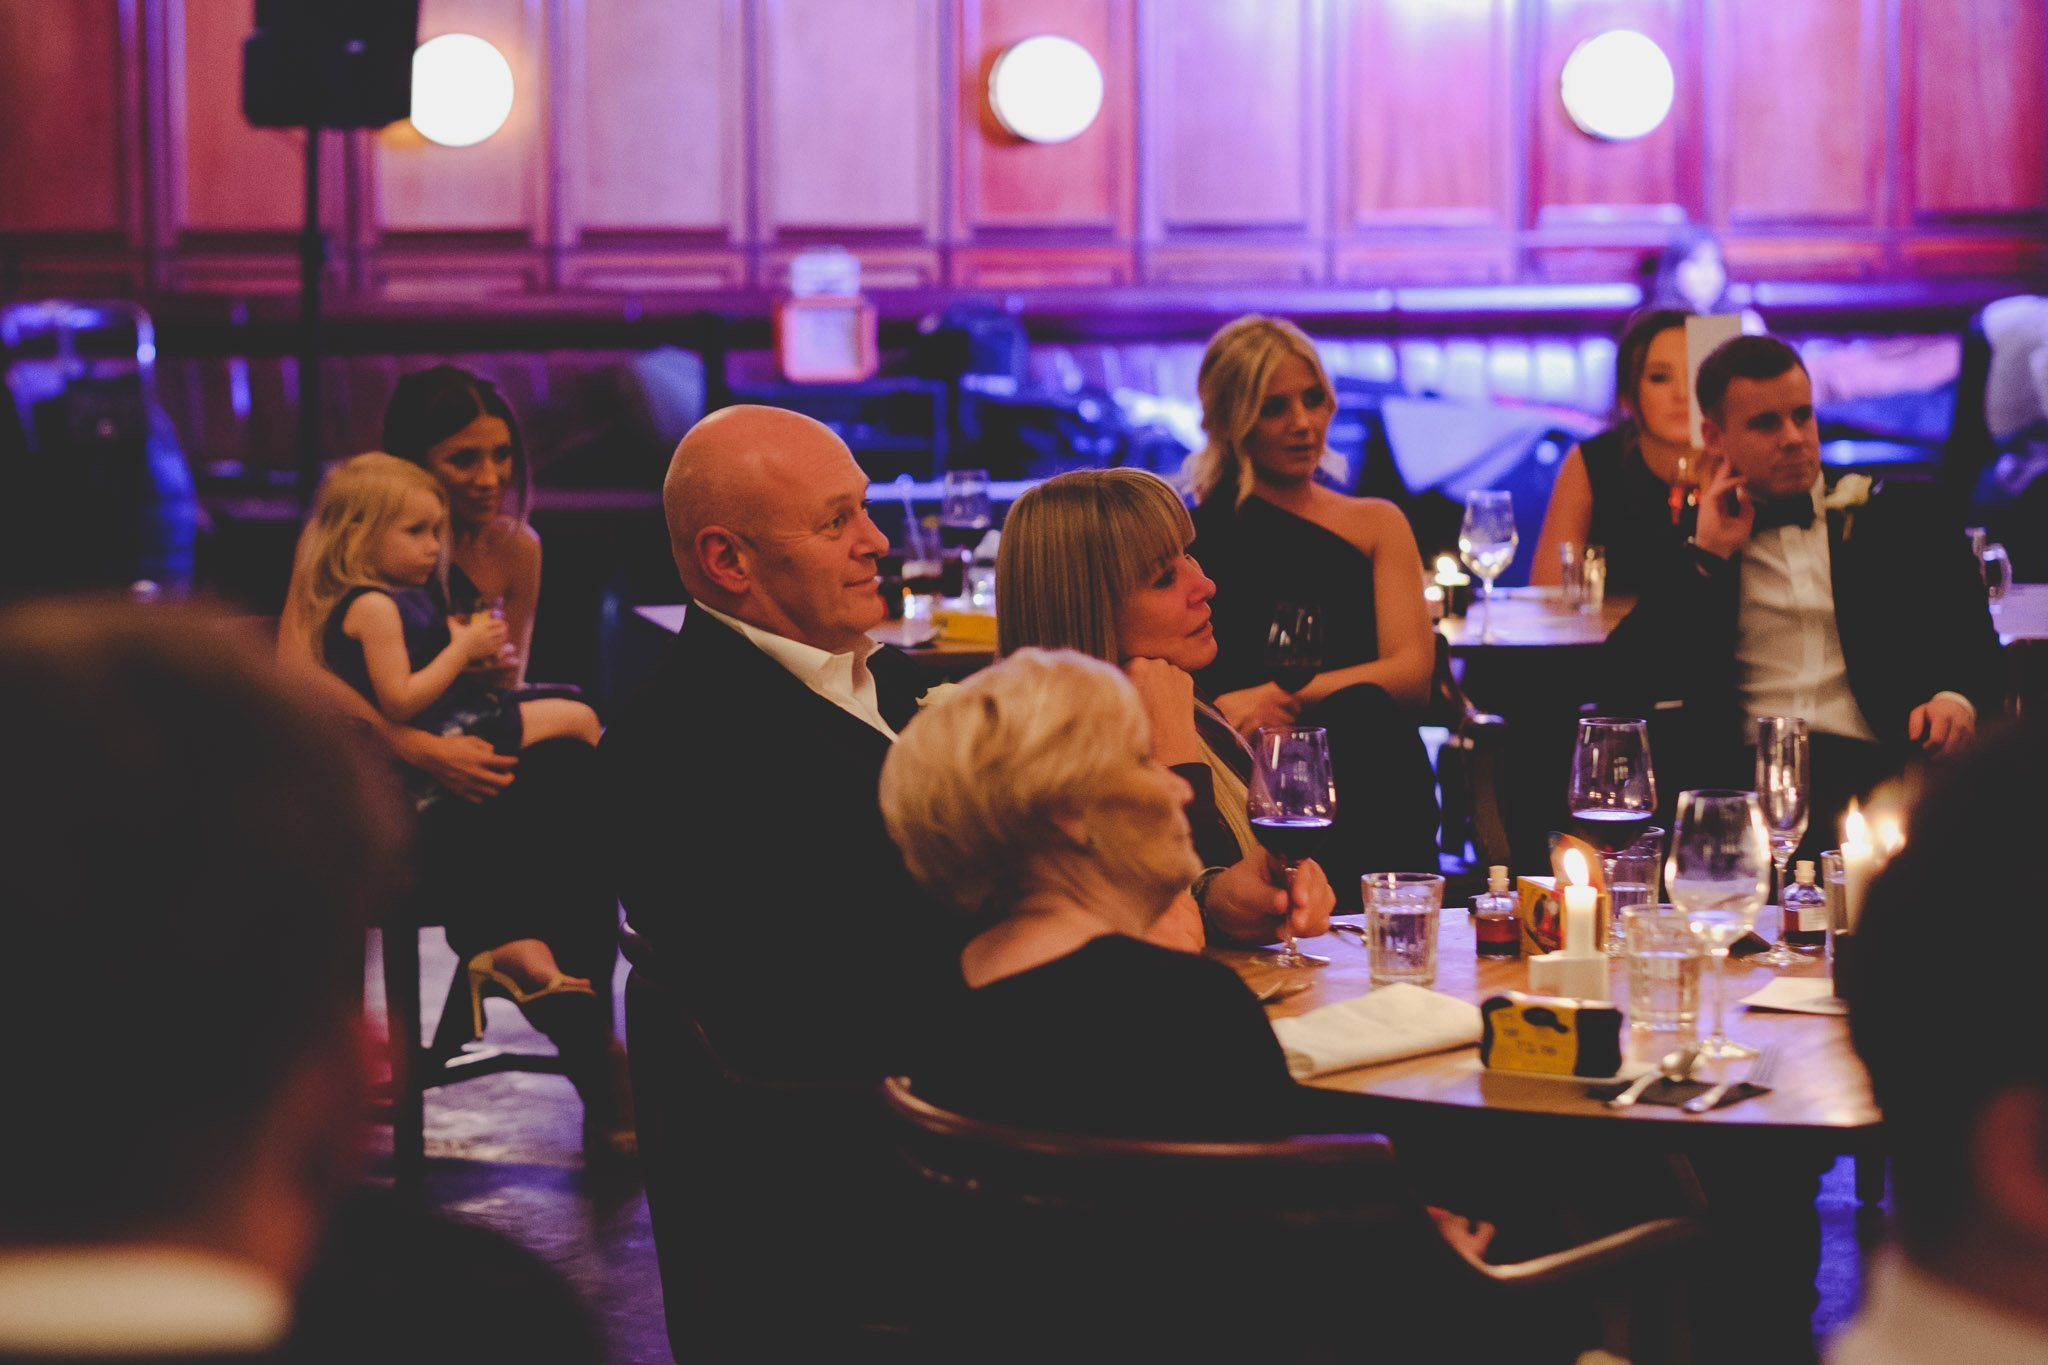 Emotional wedding guests at Hawksmoor Steakhouse in Guildhall London